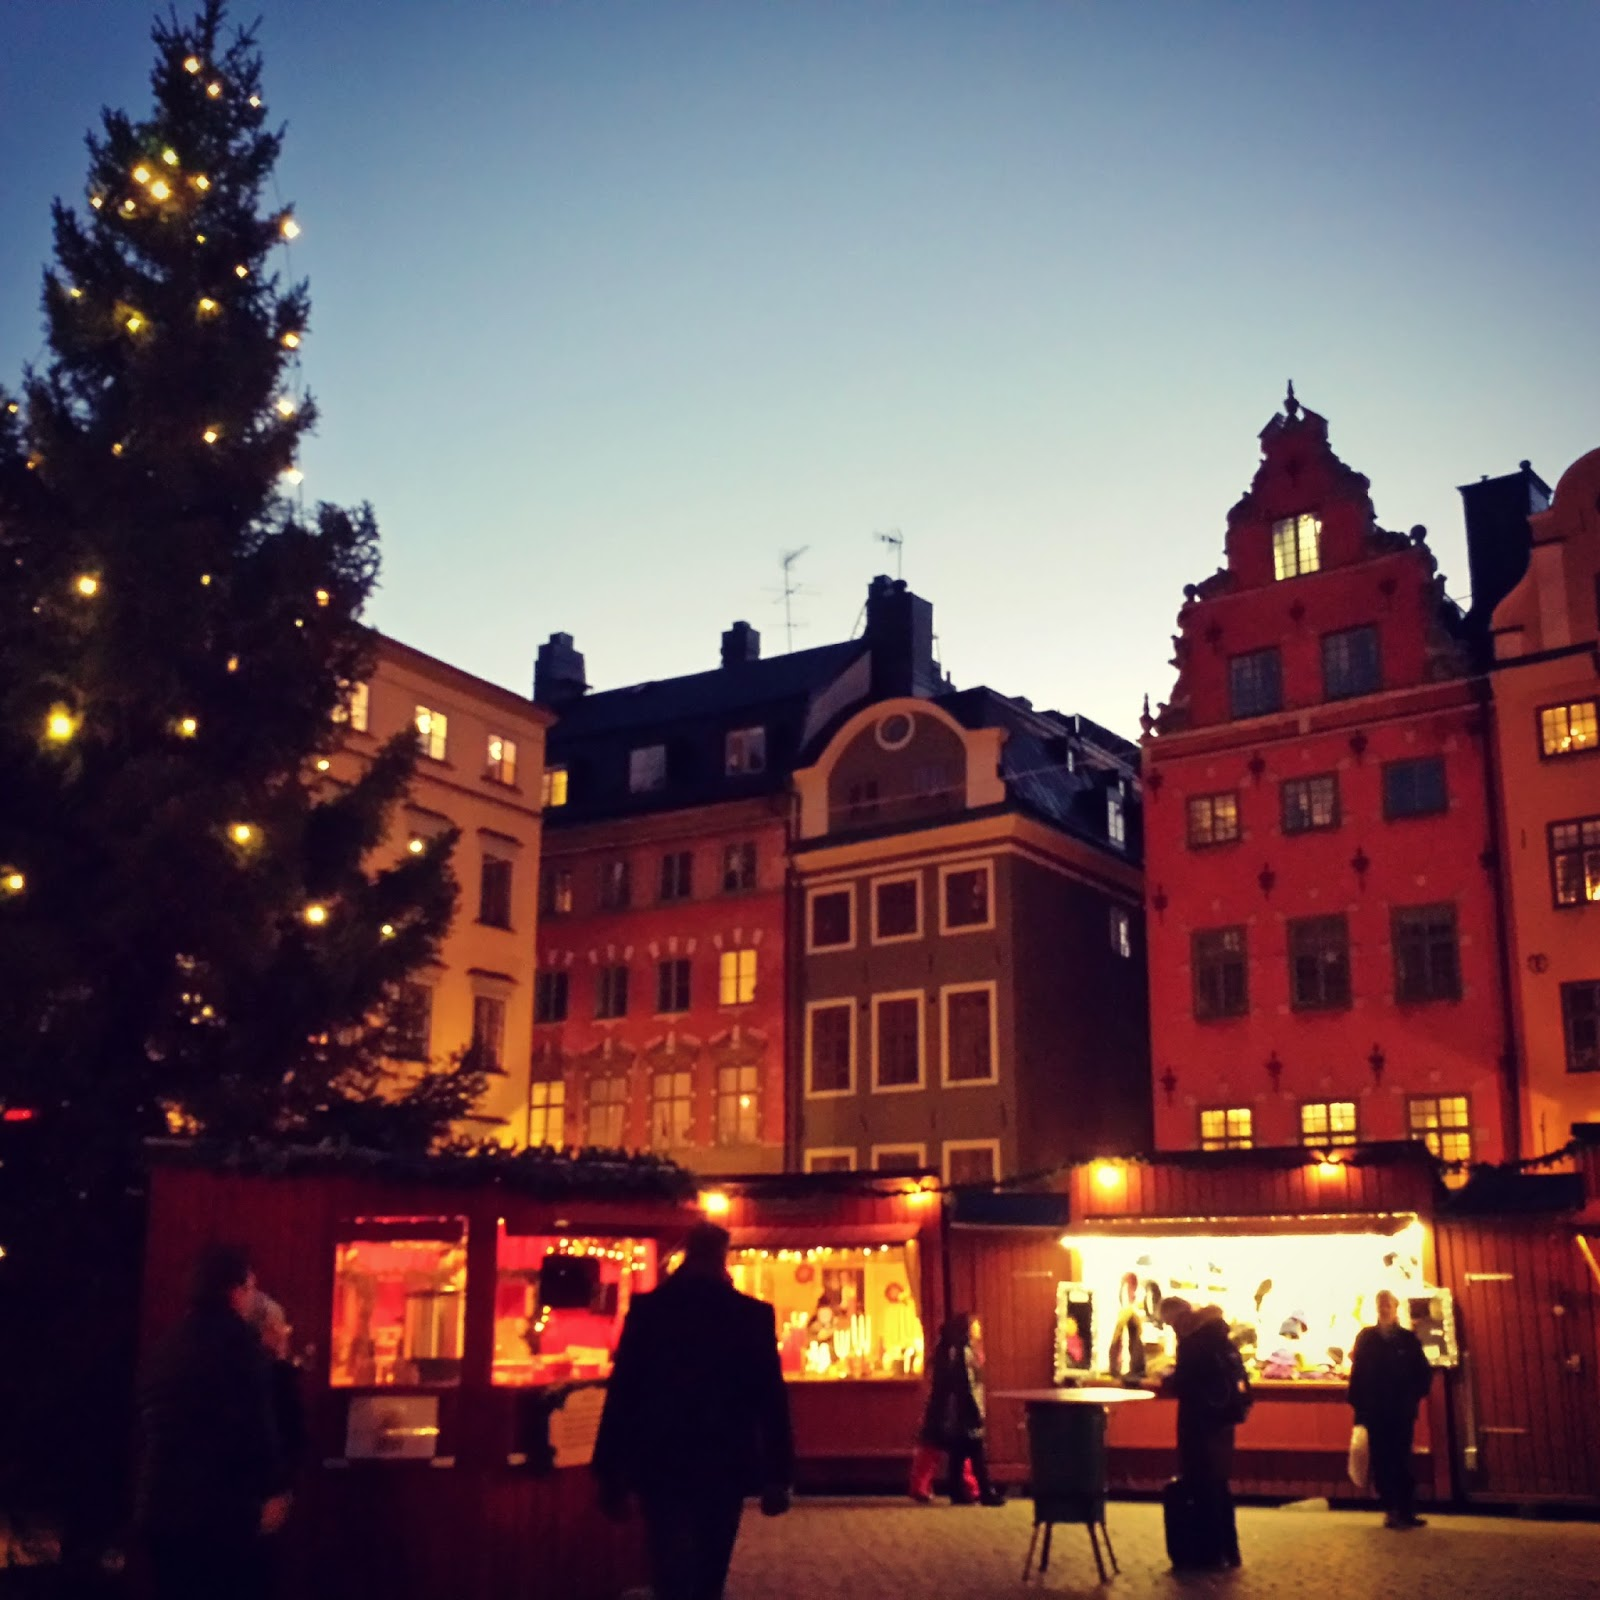 Chrismas market / Julmarknad in Old Town / Gamla Stan in Stockholm  |  Christmas in Stockholm on afeathery*nest  |  http://afeatherynest.com